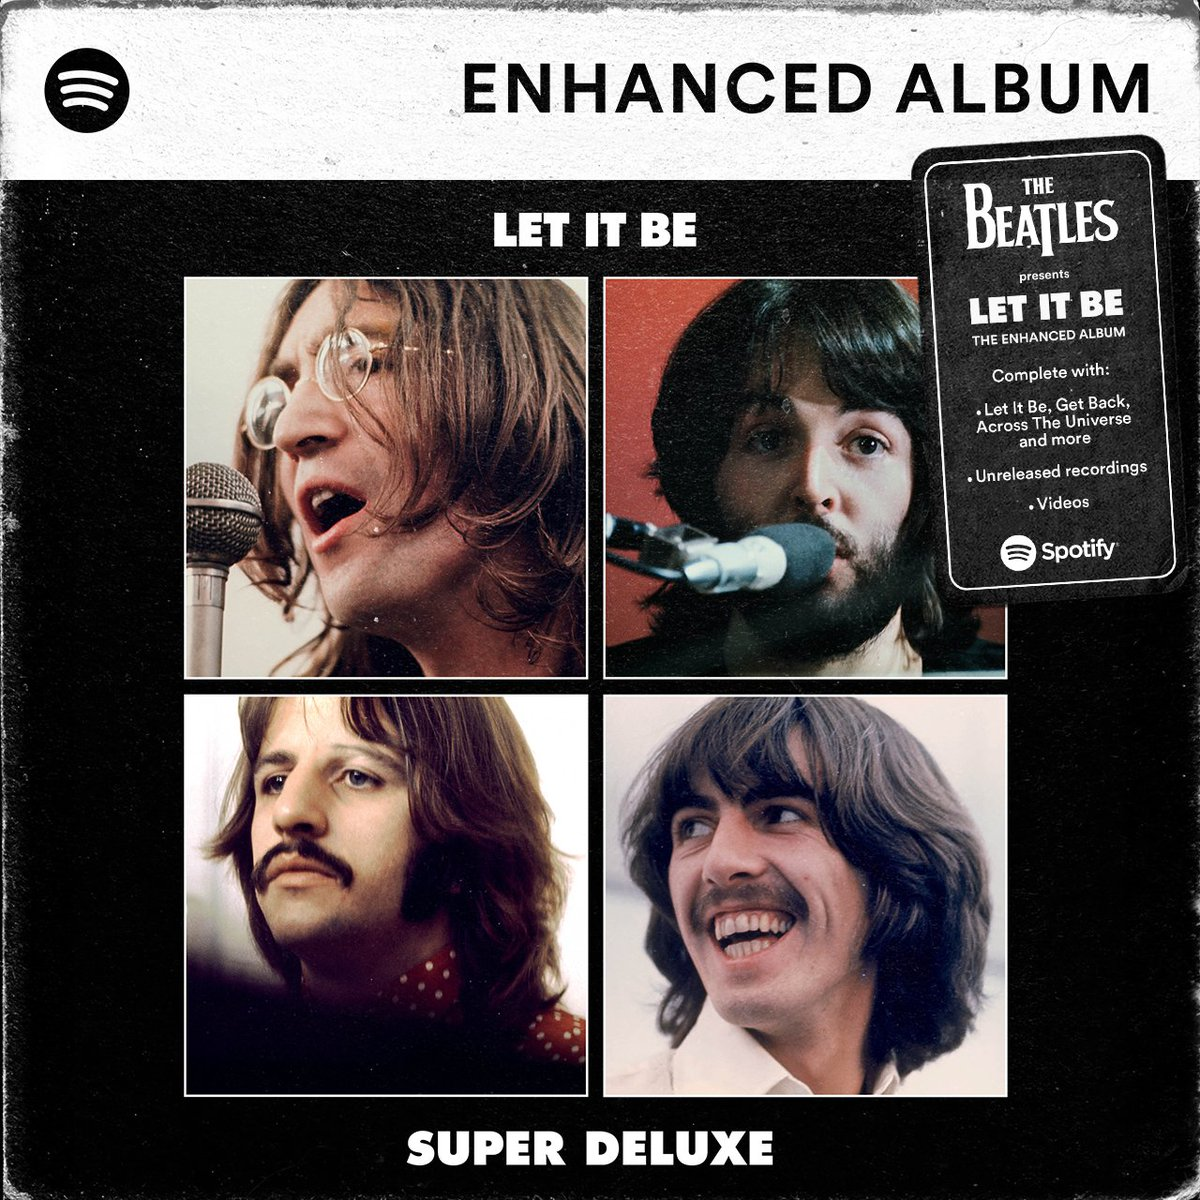 Take an iconic album, add videos and unreleased recordings into the mix, and you've got @thebeatles' Let It Be Enhanced Album. Experience it now: spotify.link/LetItBeEA